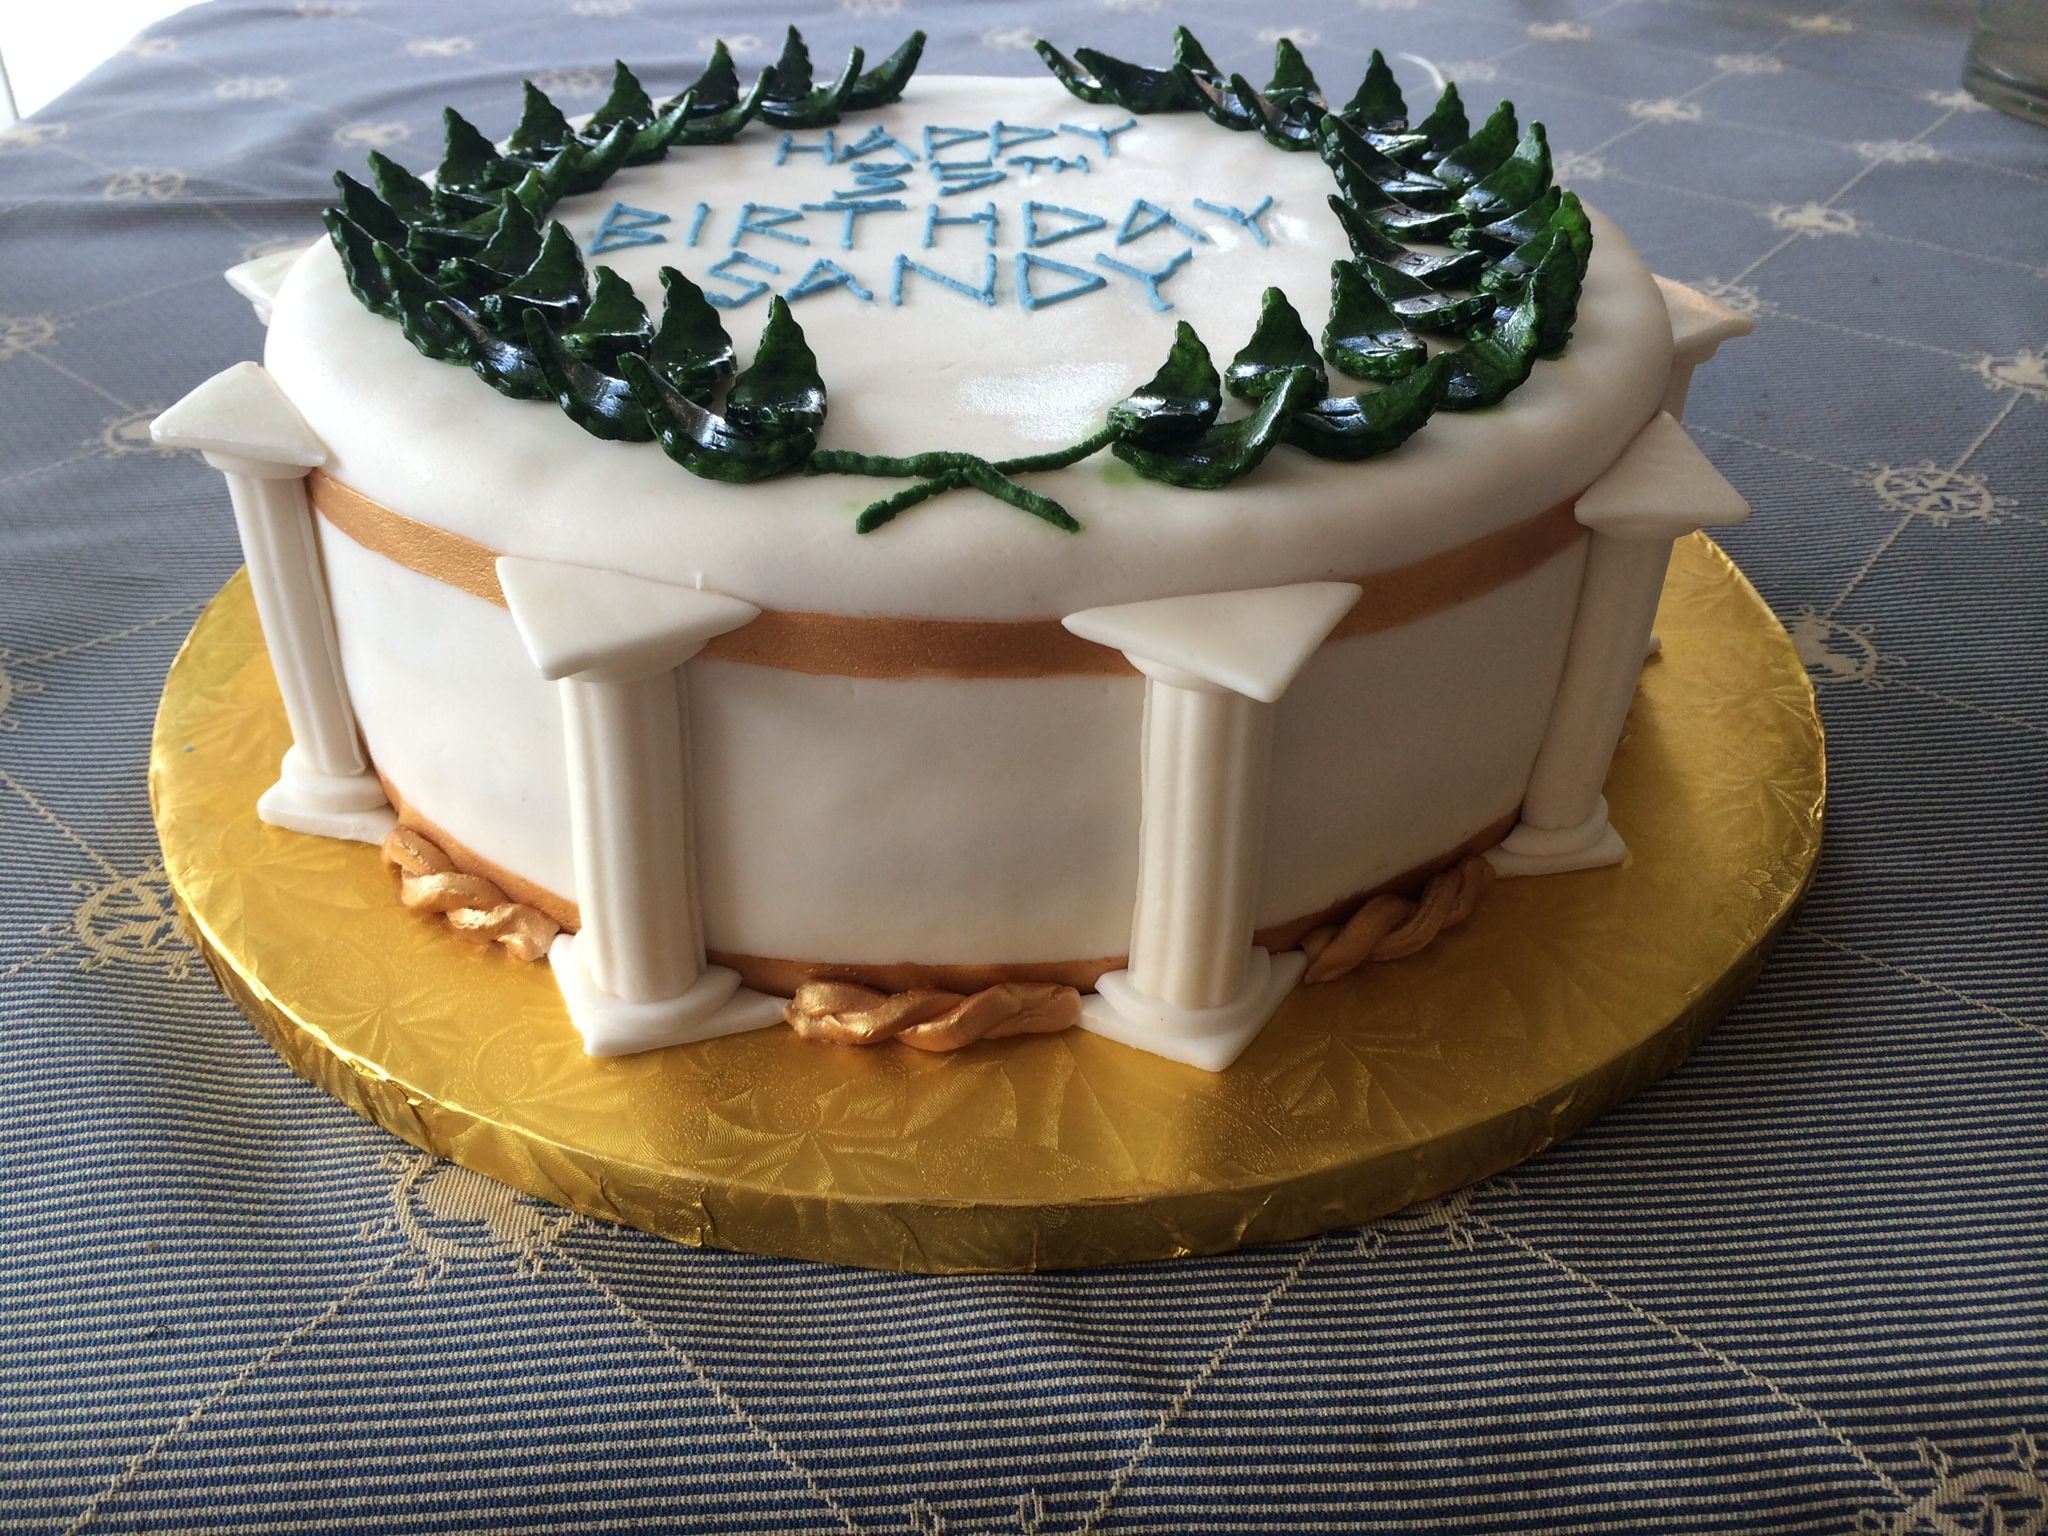 Greek Toga Party Cake Jocy S Cakes In 2019 Toga Party